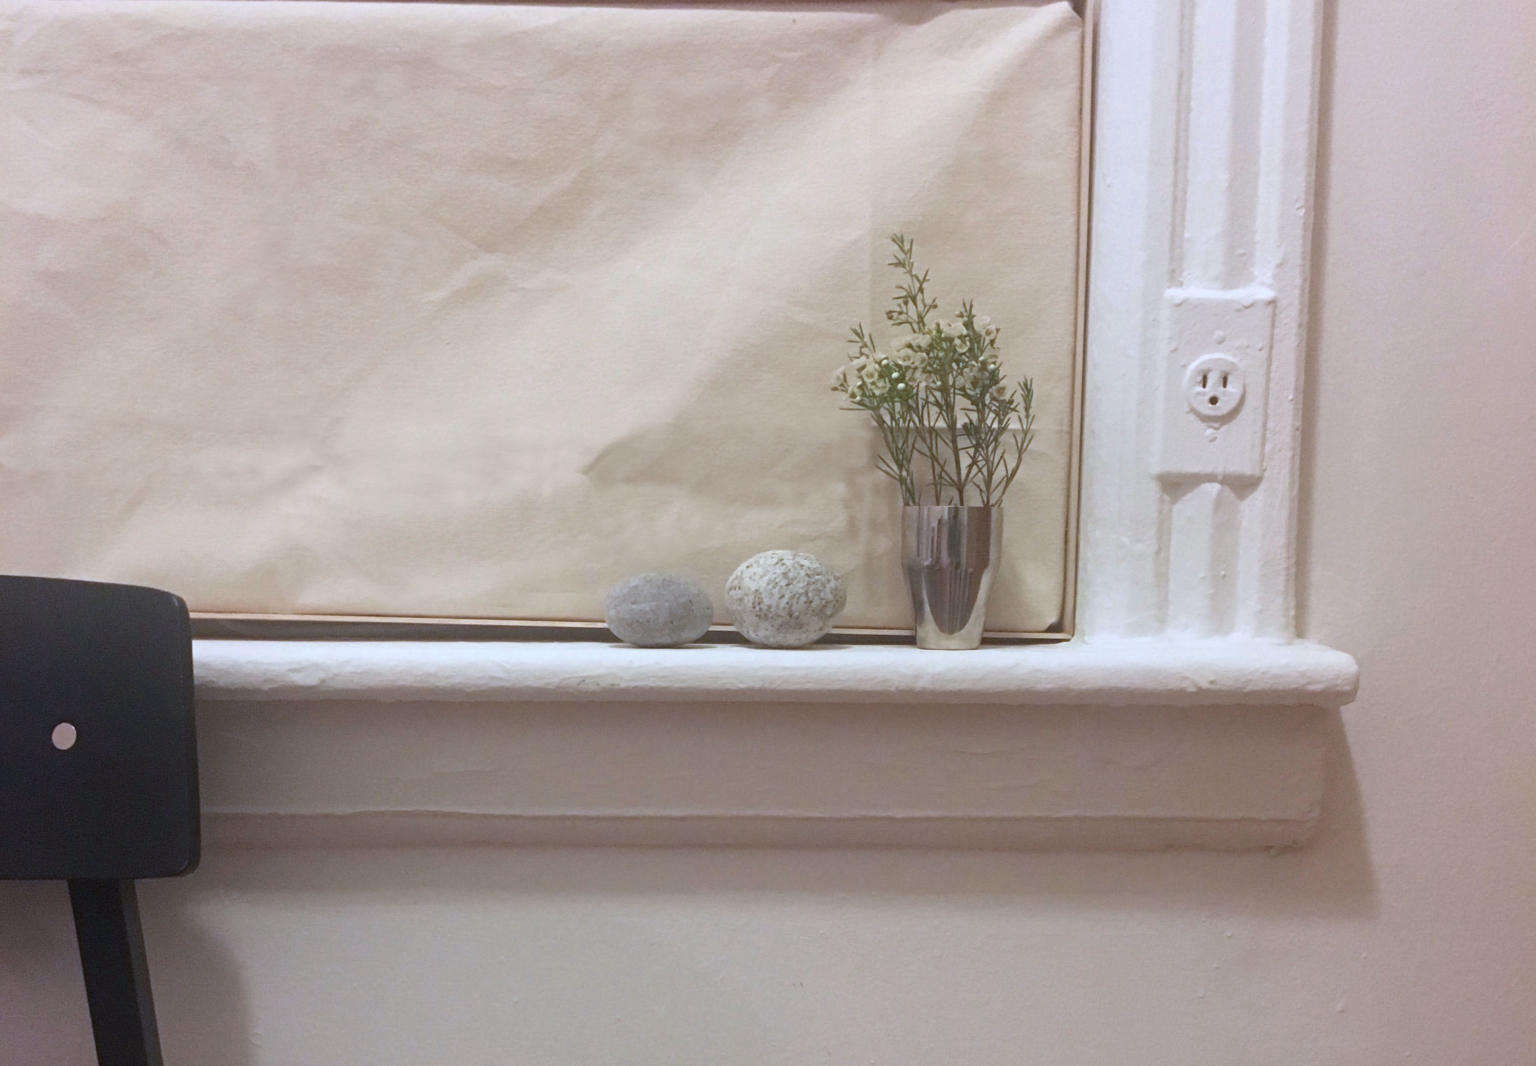 DIY: A Simple, Easy Cover for an Ugly Window Air Conditioner (for $15)